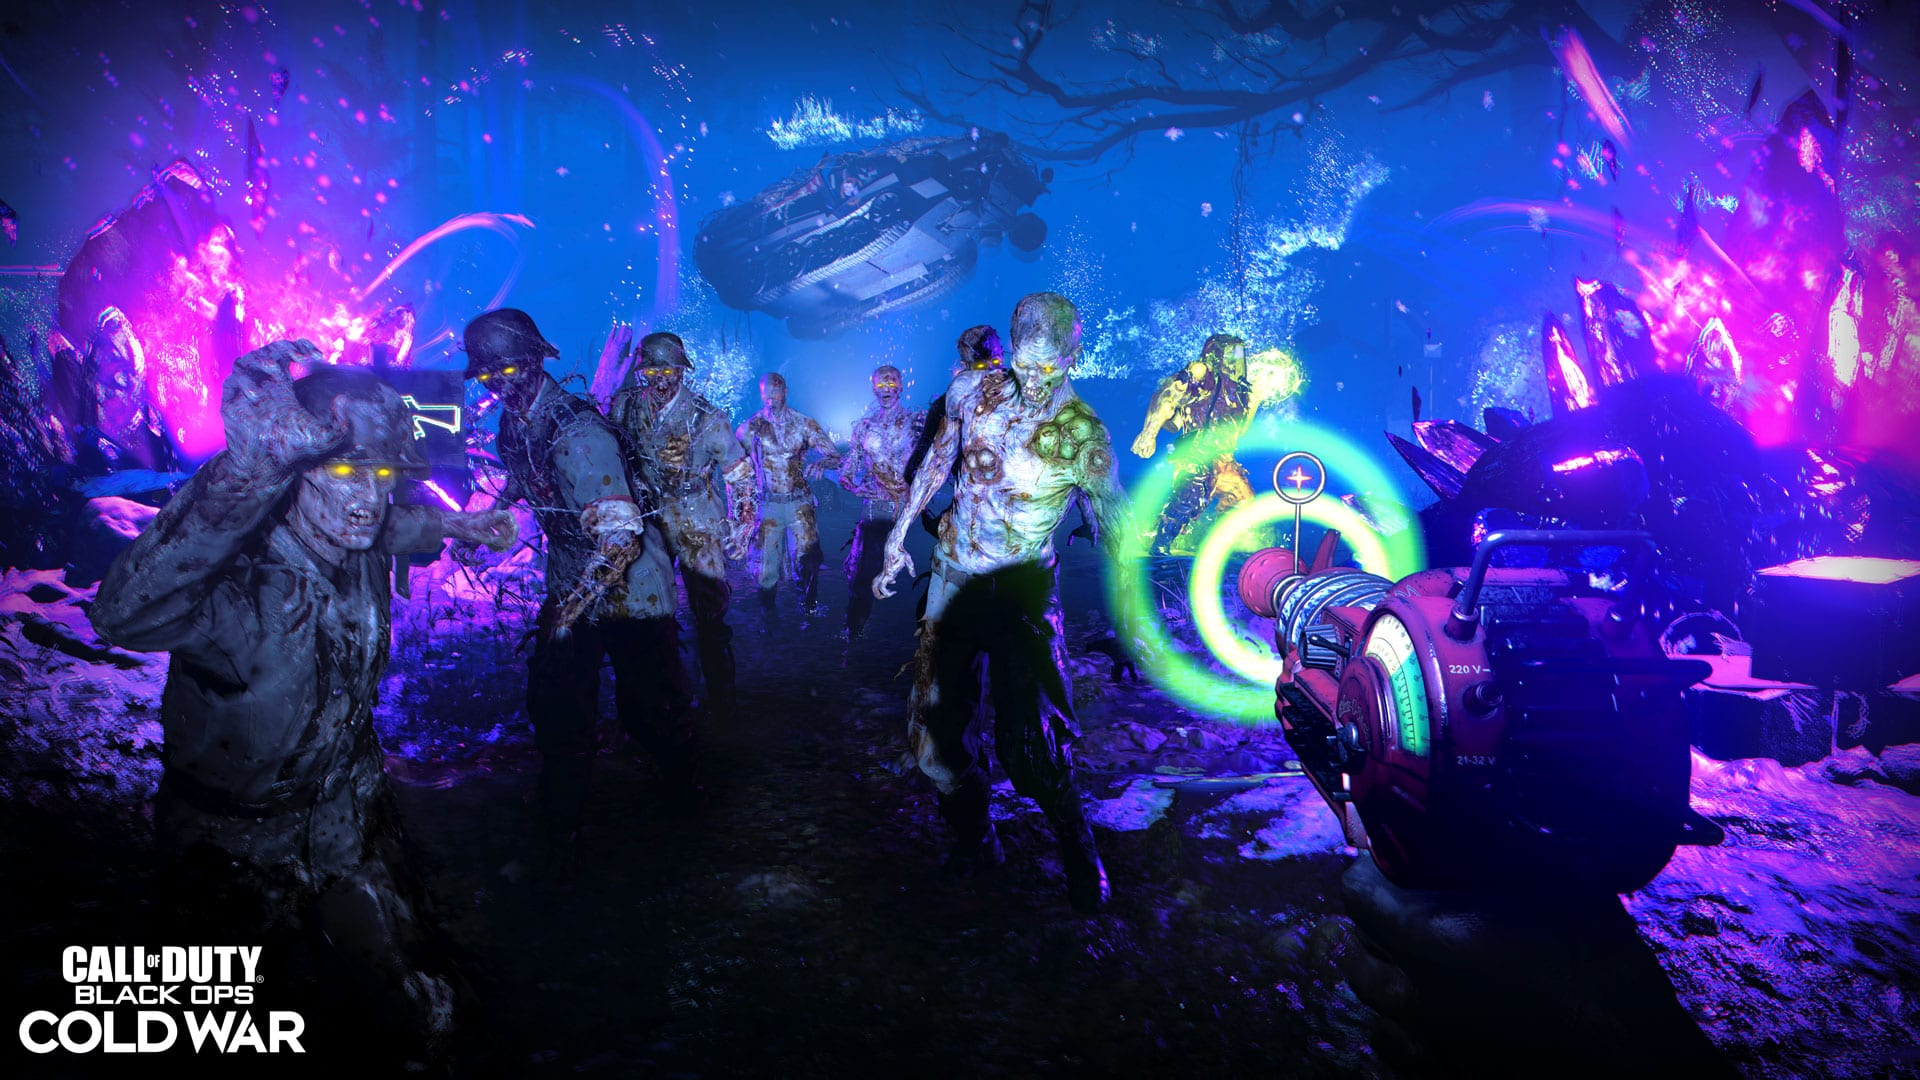 Treyarch's Teasing a New Black Ops Chilly Warfare Zombies Map 1